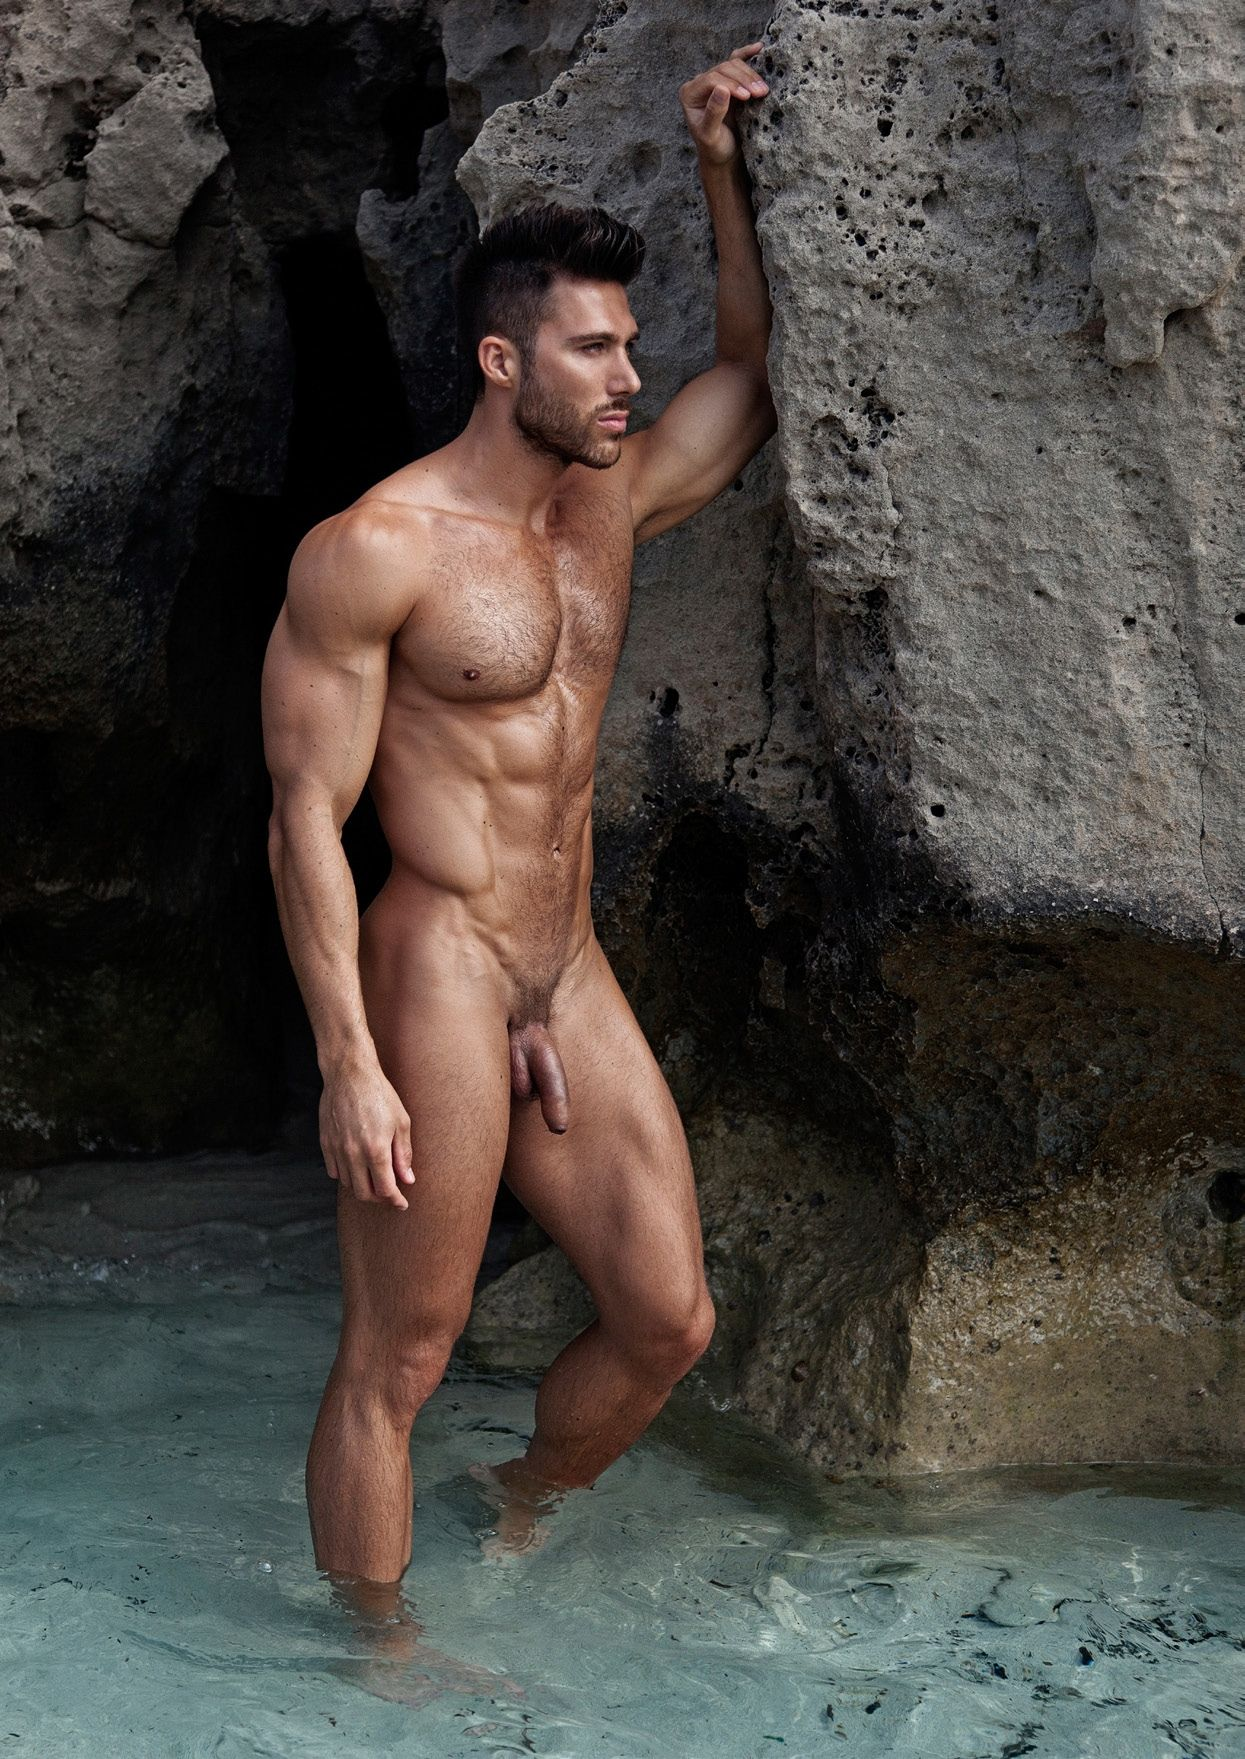 Hot naked men models